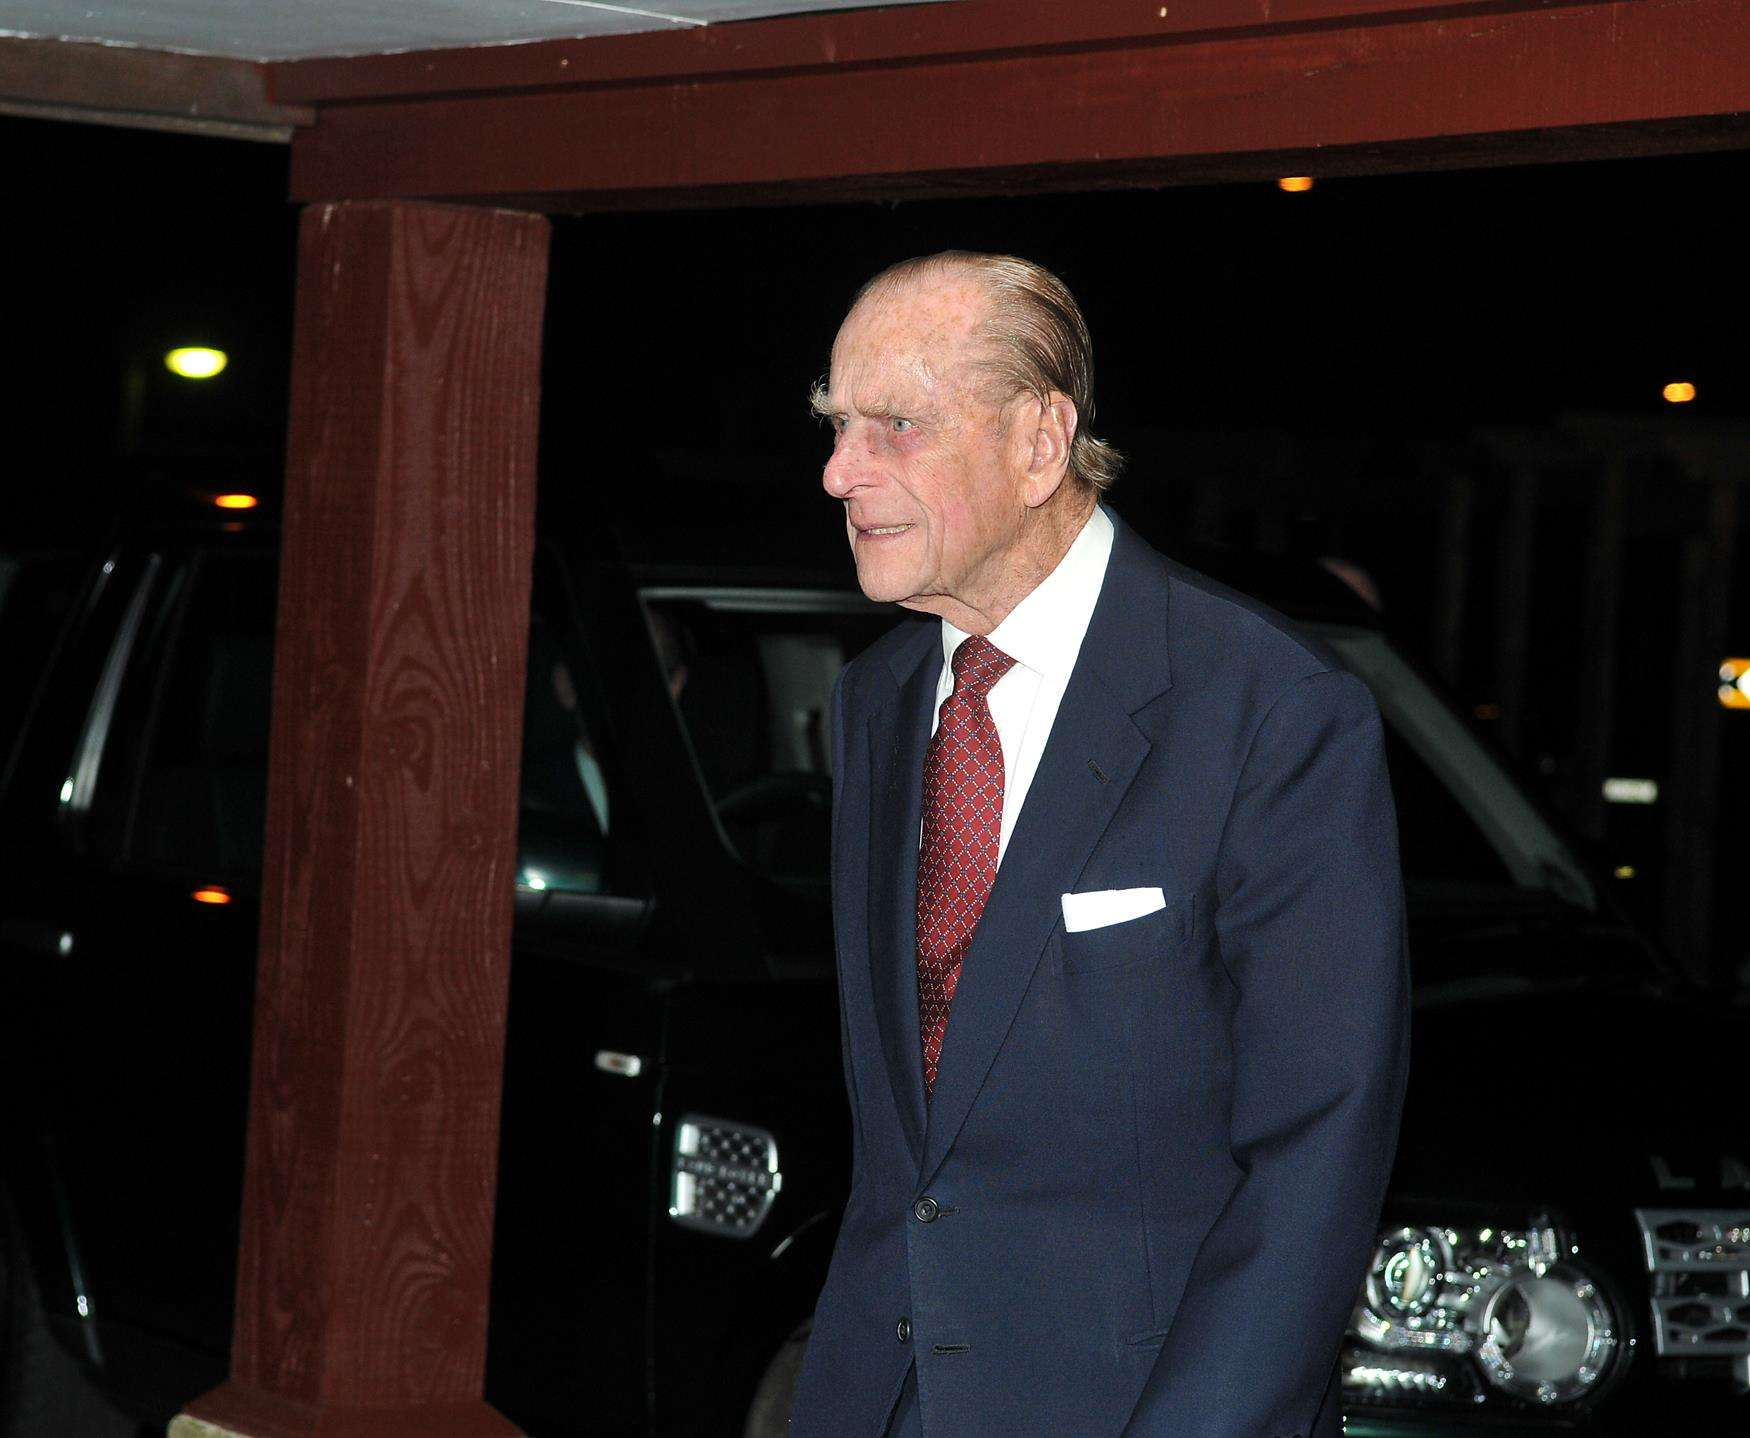 The Duke of Edinburgh has given up his driving licence, Buckingham Palace officials have announced